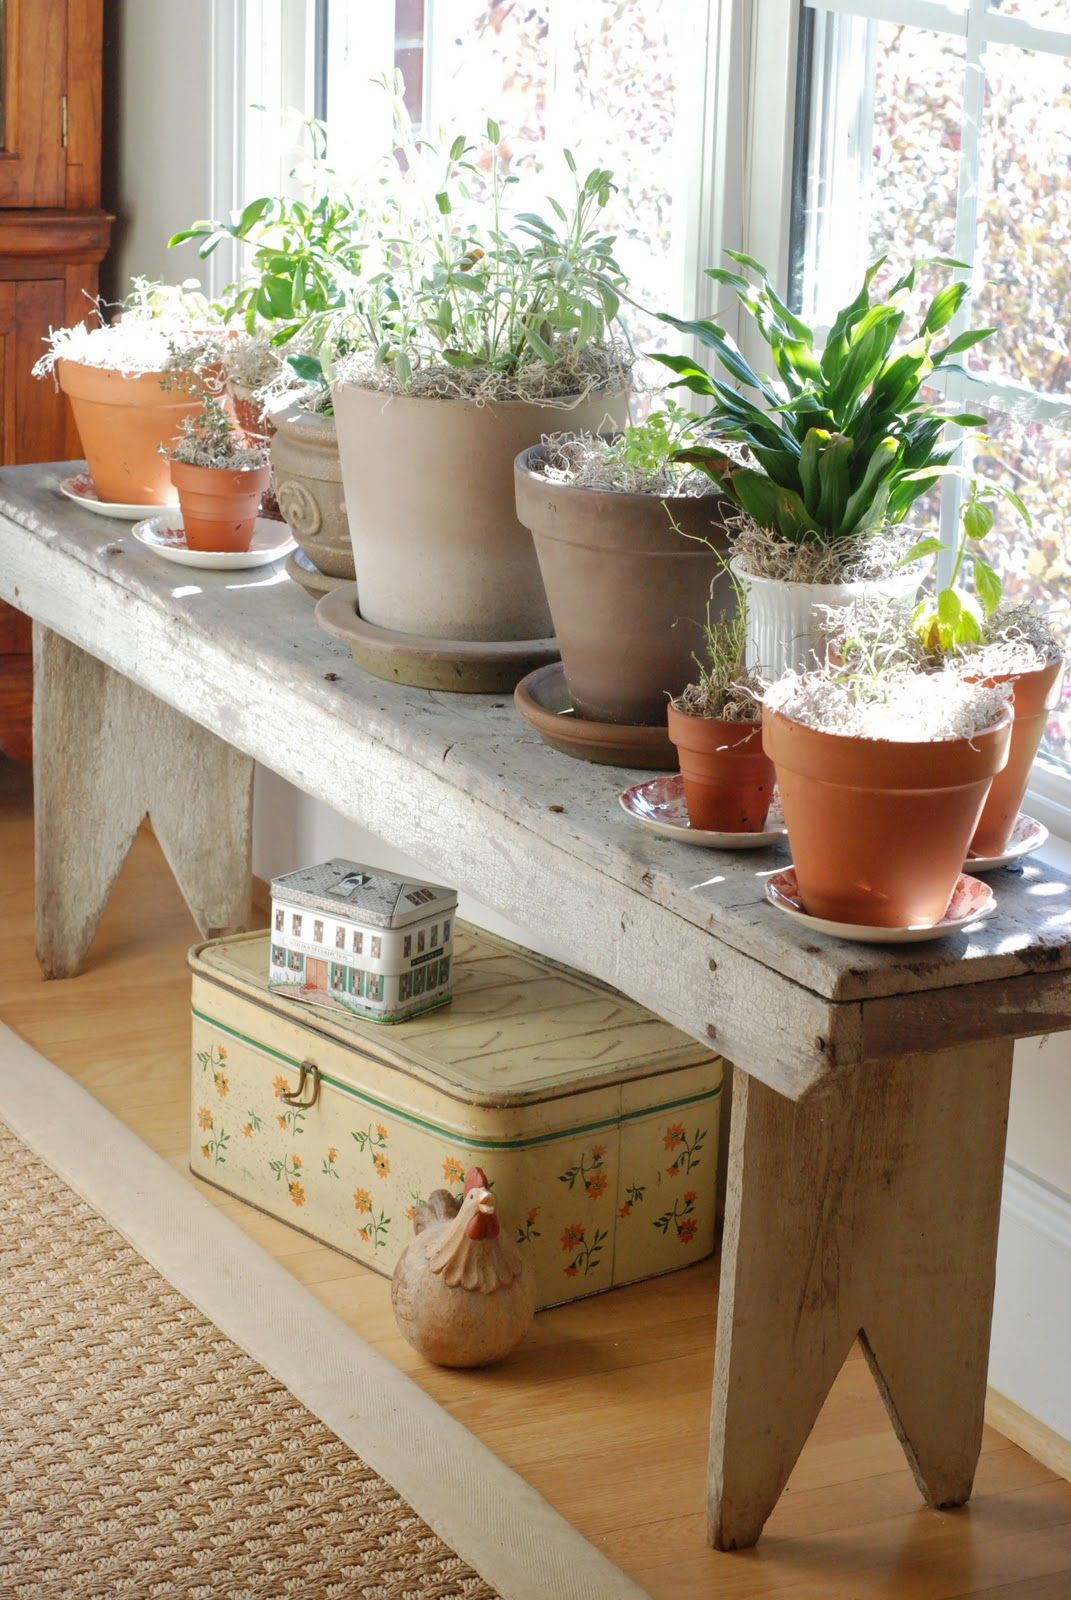 Plant Bench Indoor I Would Love This In Our Home Indoor Garden In The